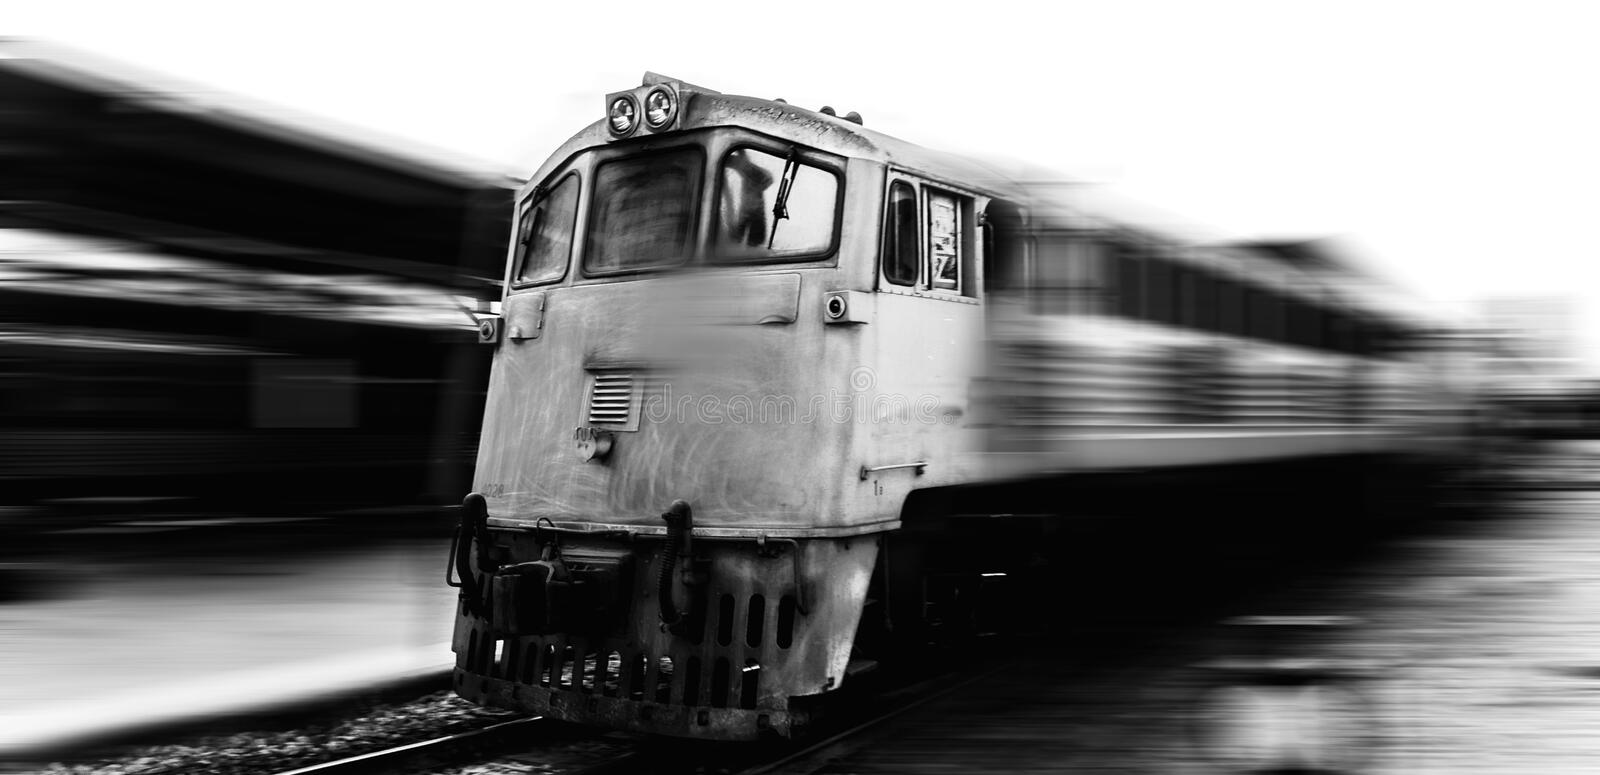 High-speed train passing station with motion blur old loco motive black and white photography royalty free stock images